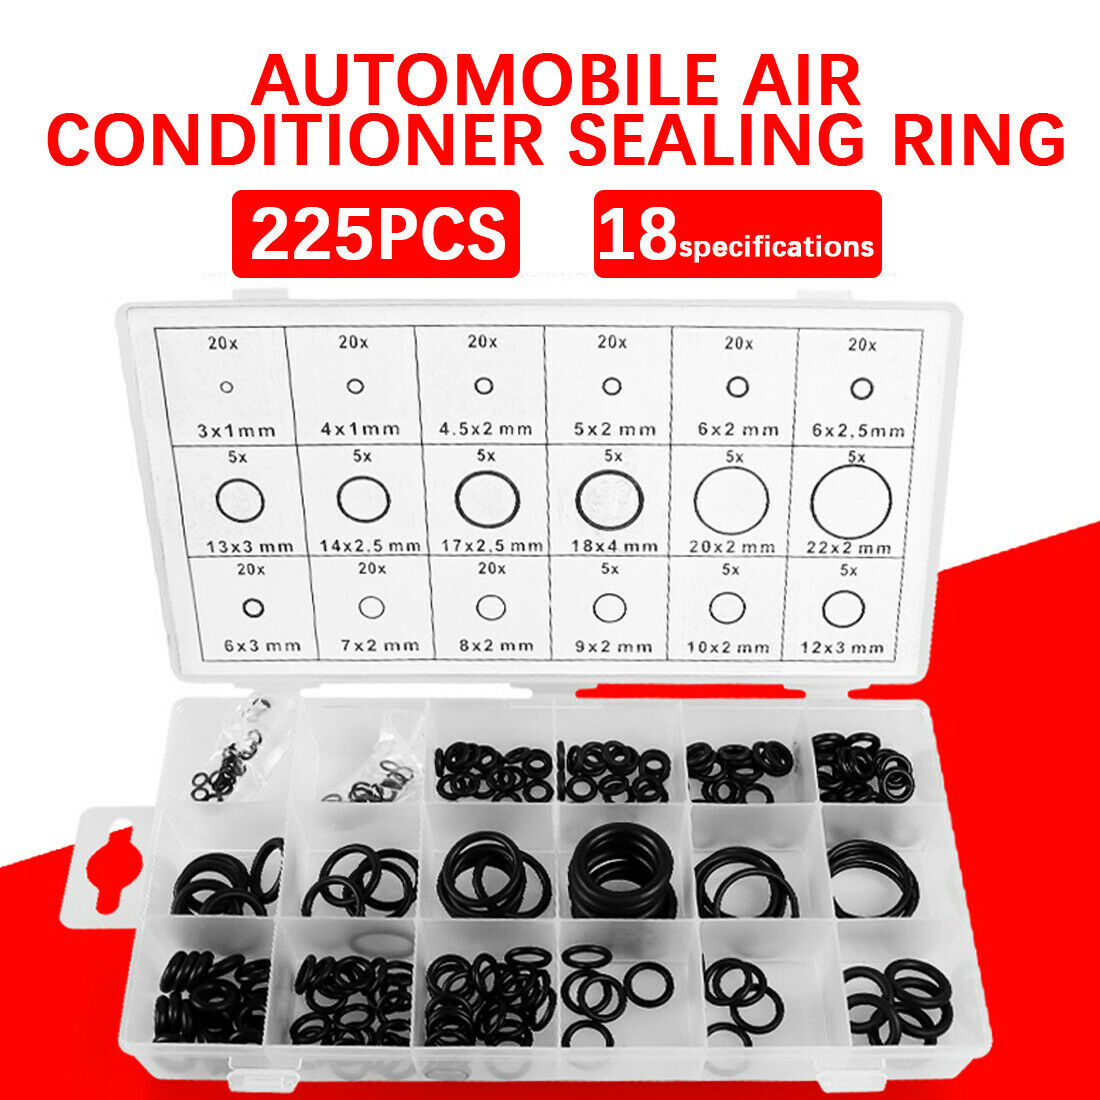 LuckyMAO O Rings 225pcs//lot Rubber O-Ring Gasket Assortment Kit SAE Plumbing Auto Hydraulics HVAC Gas with Re-sealable Plastic Case